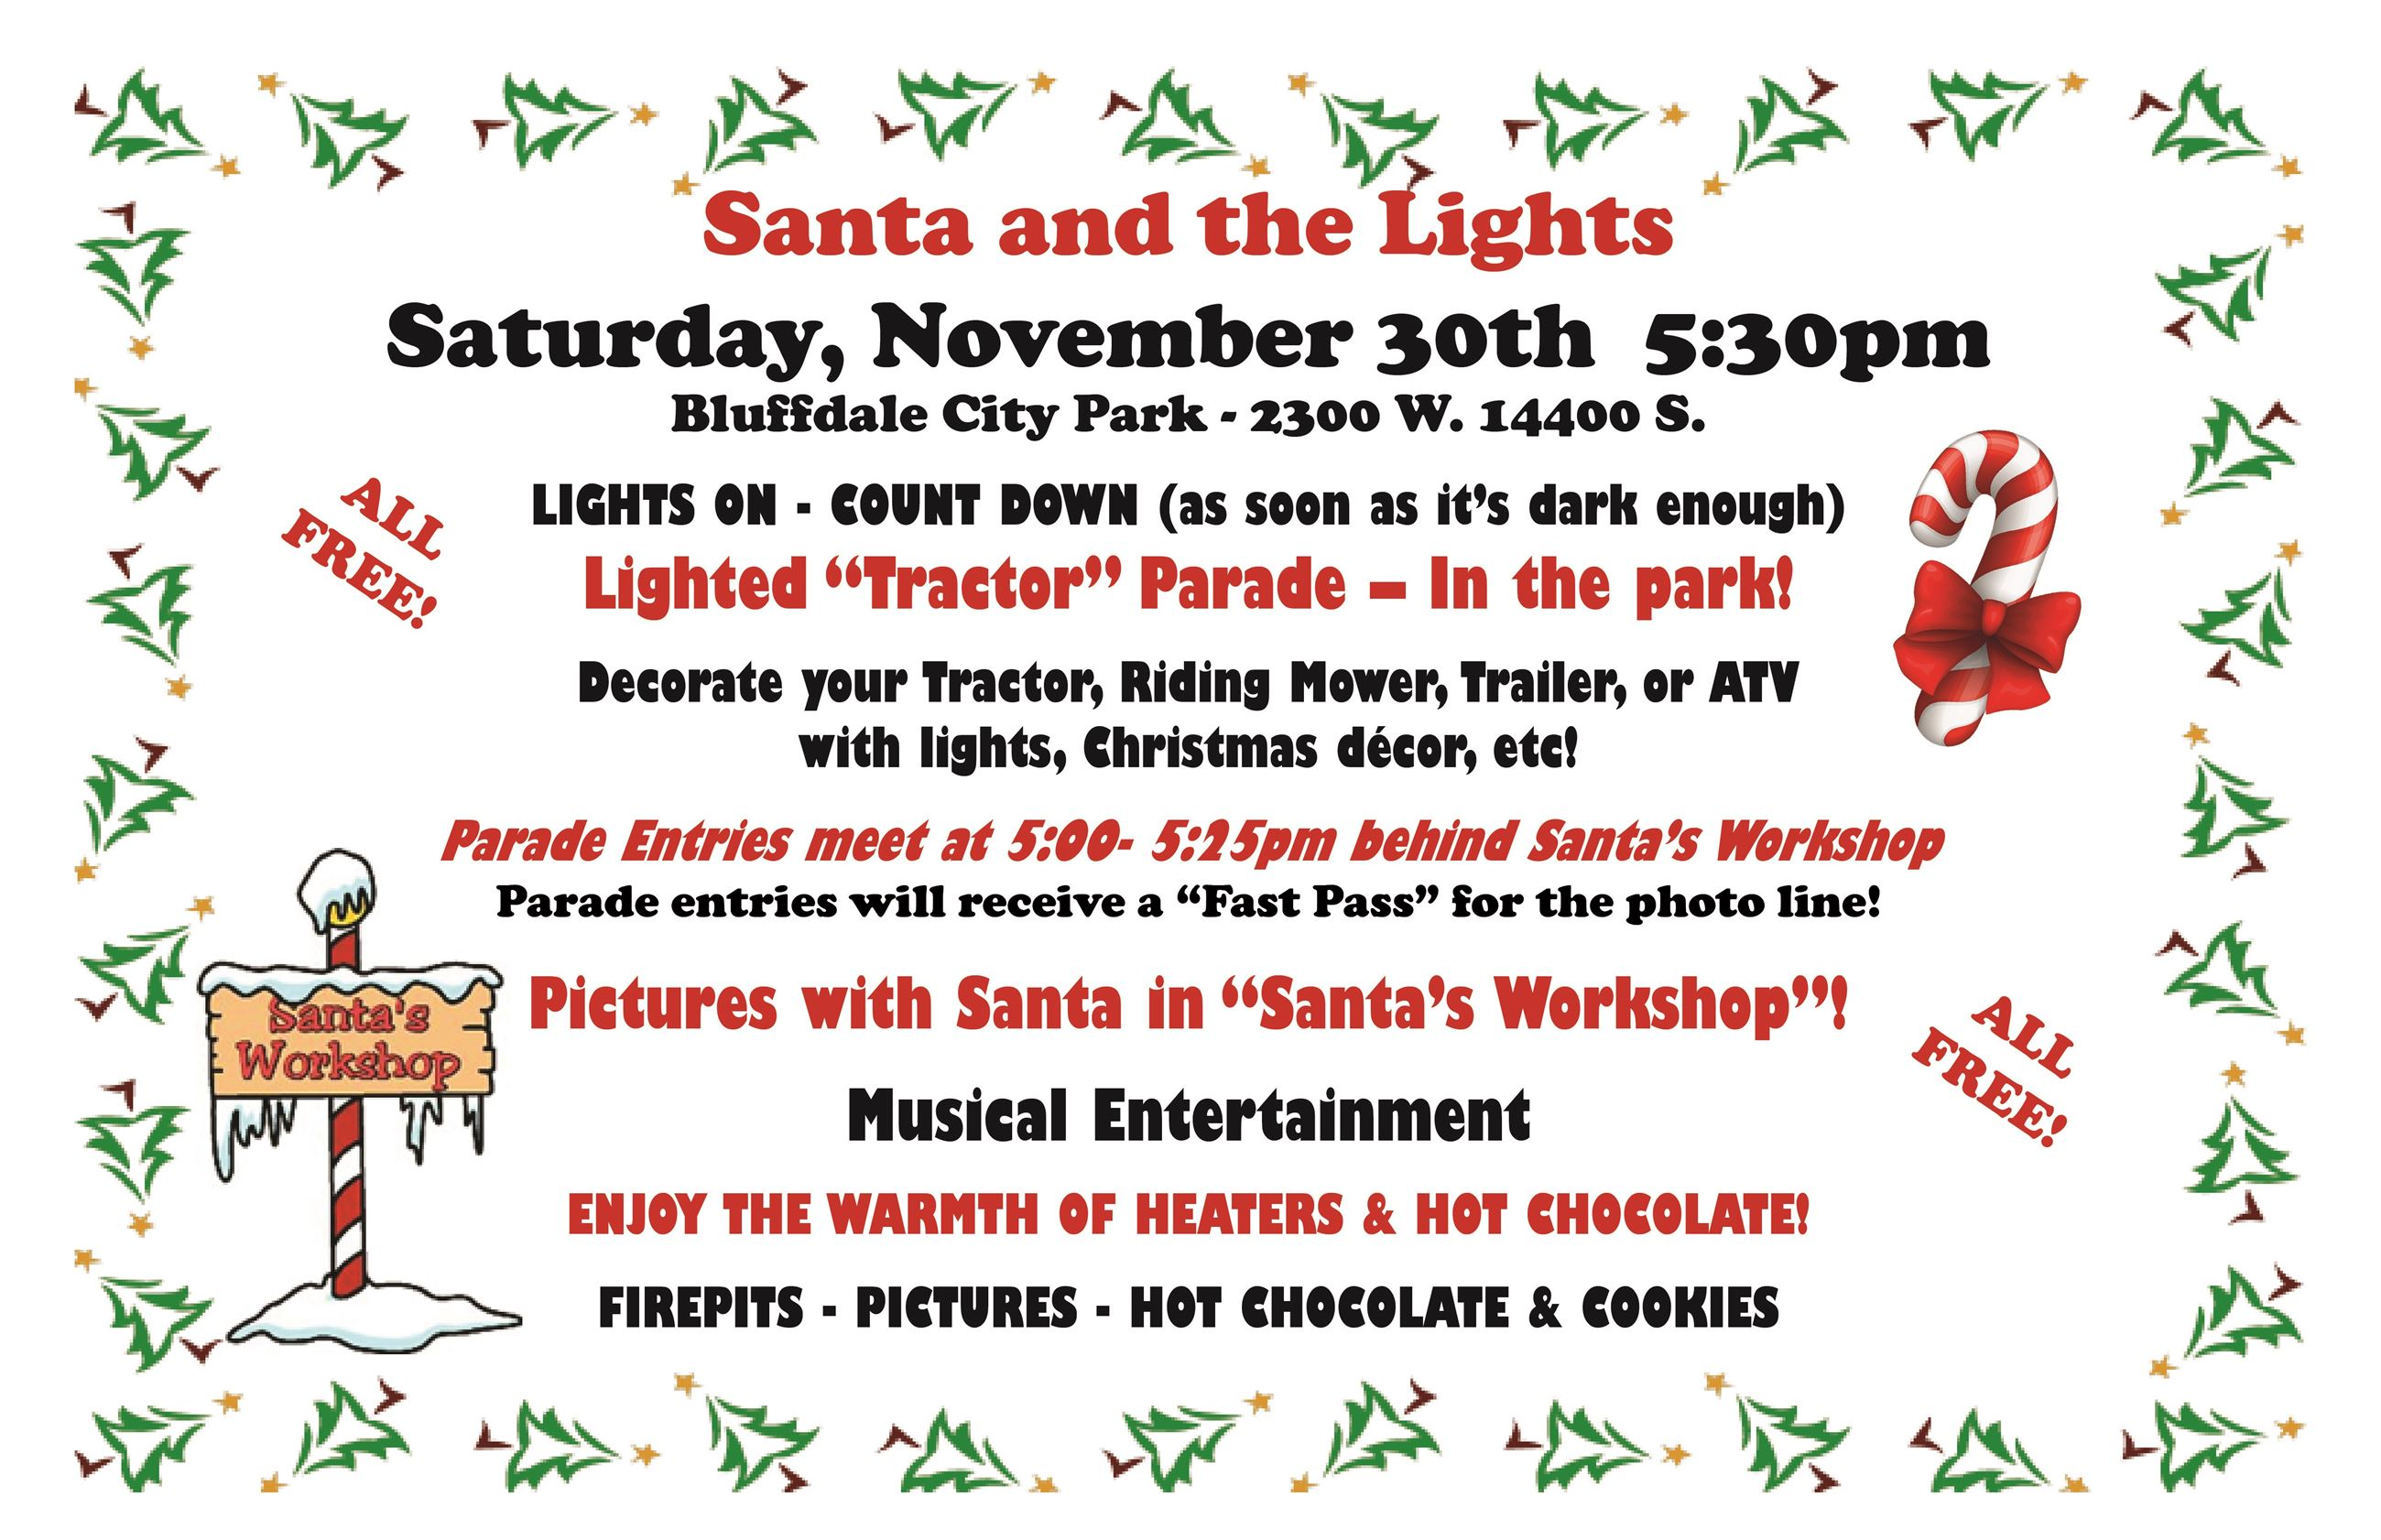 2019 Bluffdale Santa  Lights Flyer (002)